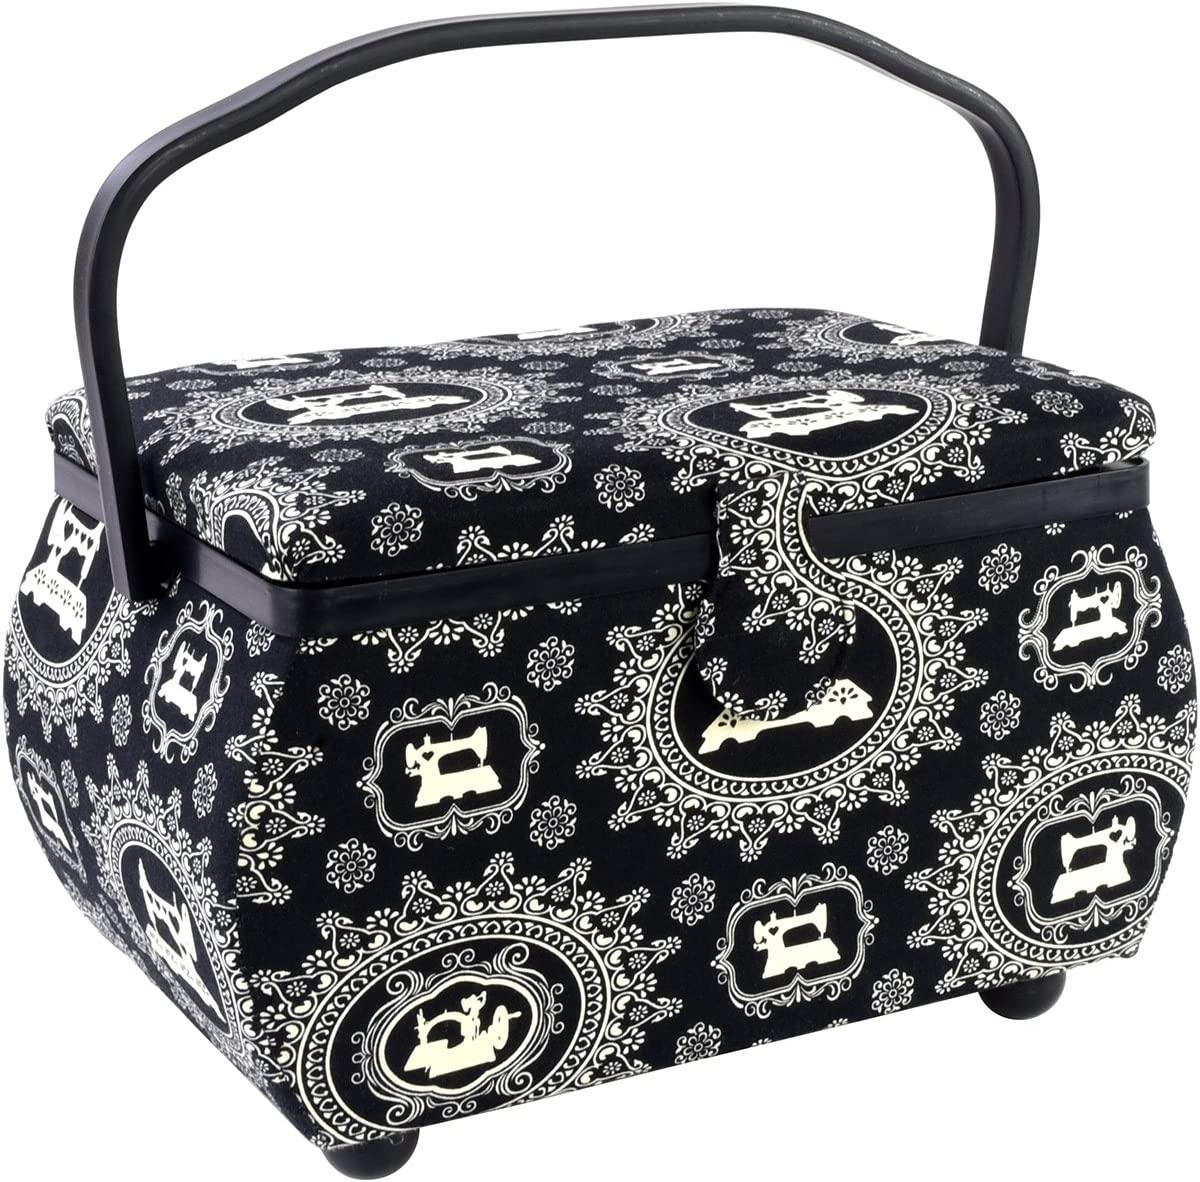 Sewing Basket Rectangle-12.75x7.625x7.75 Machine Max 55% OFF Print High quality new